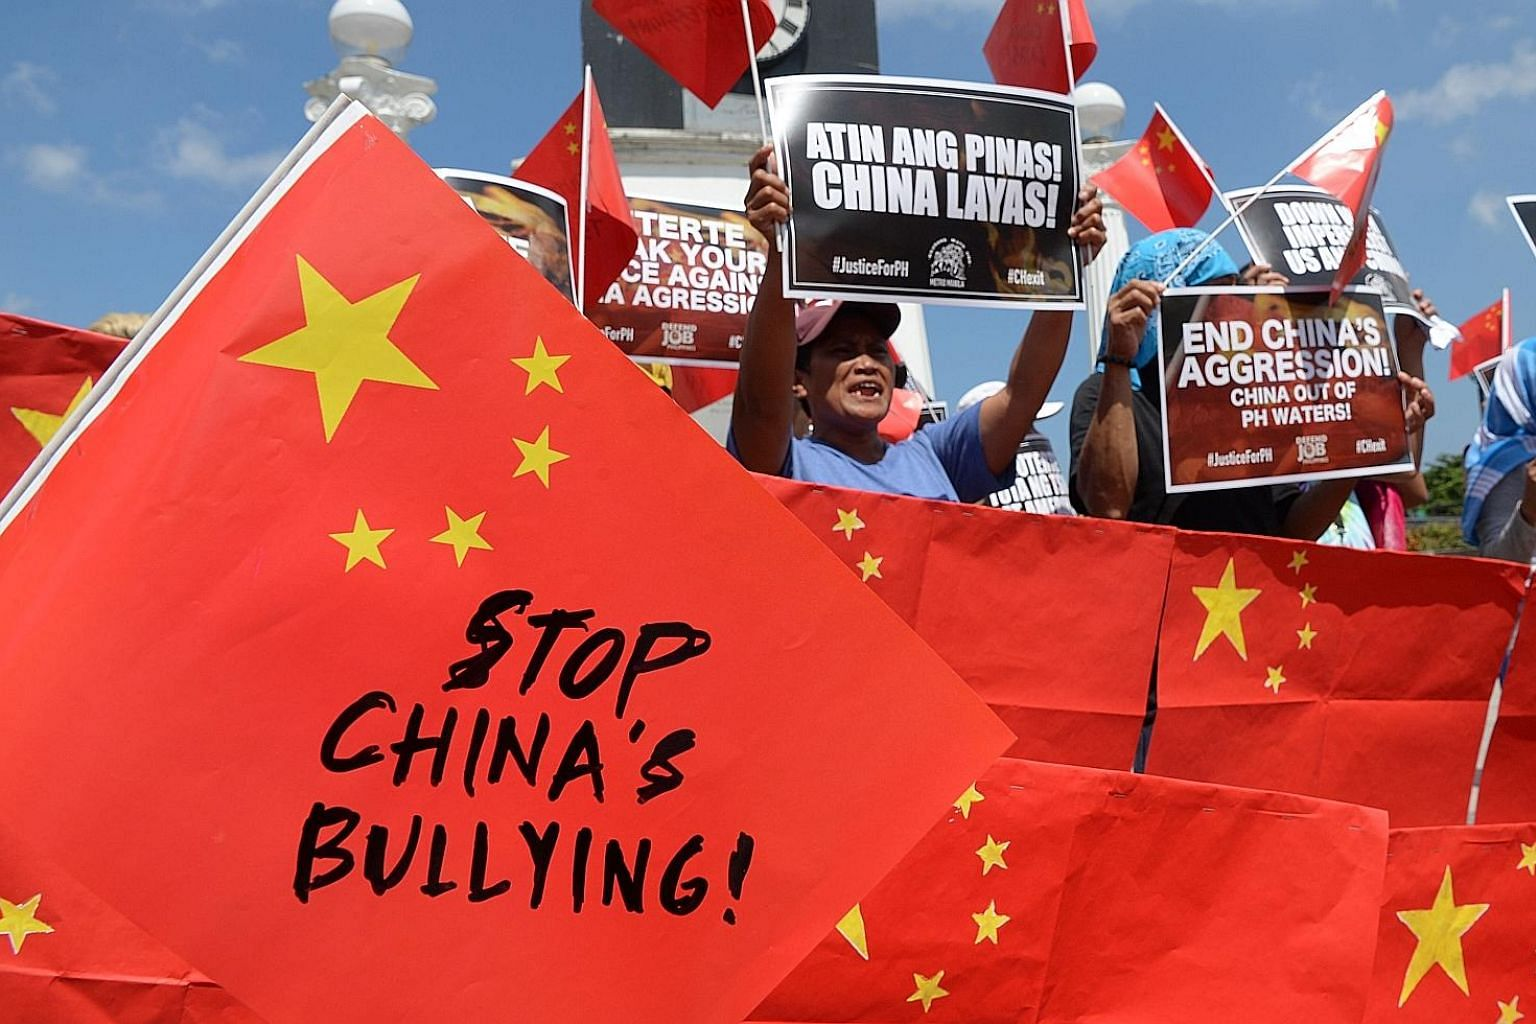 An anti-China rally in Manila in June after a Chinese vessel collided with a Philippine fishing boat in the South China Sea, causing it to sink. Philippine President Rodrigo Duterte, who has so far resisted calls to press a 2016 tribunal ruling on th